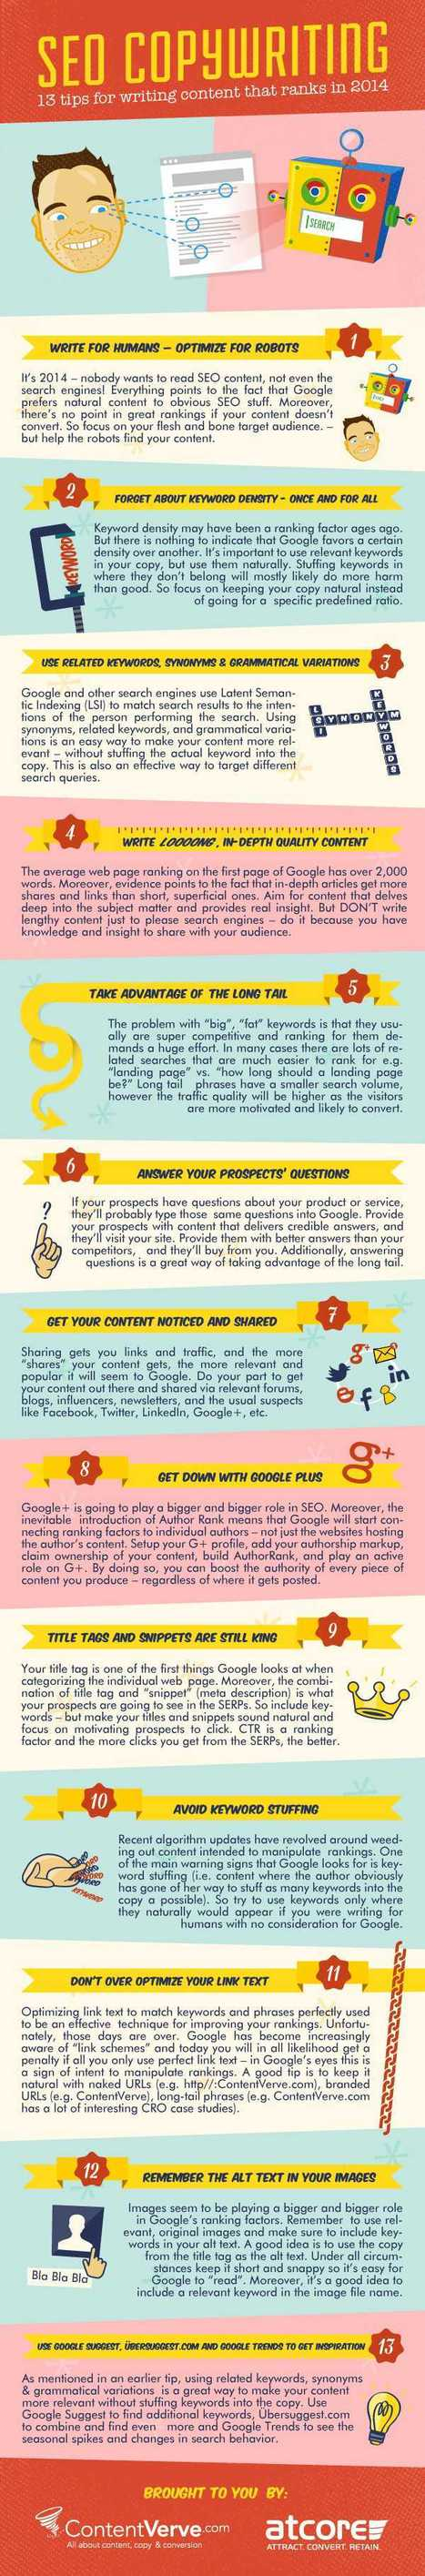 13 SEO Copywriting tips [Infographic] - Smart Insights Digital Marketing Advice | social: who, how, where to market | Scoop.it